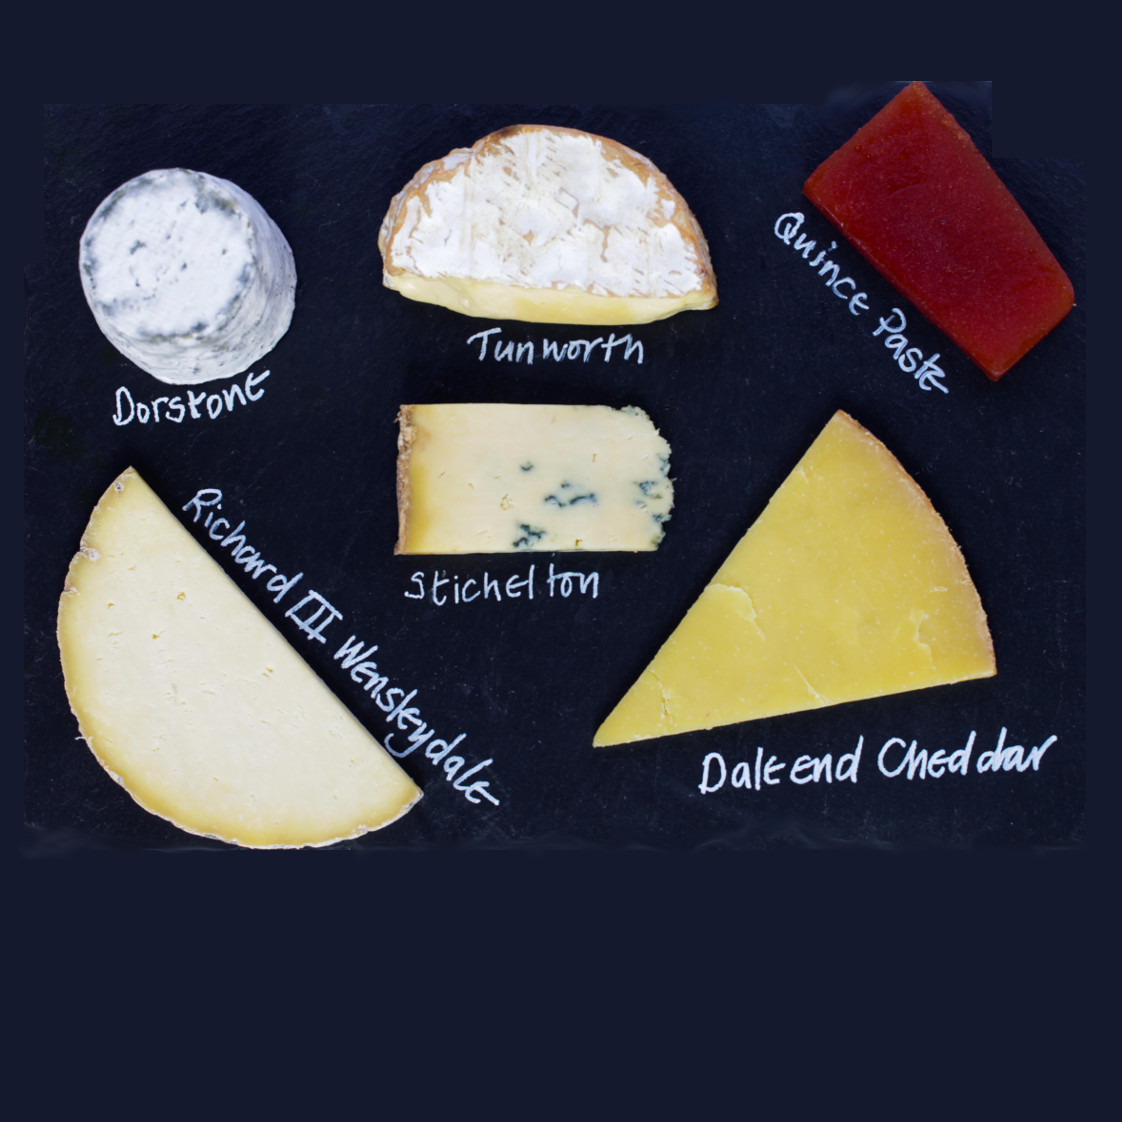 Dinner Party Cheeseboard Cheese Box The Courtyard Dairy